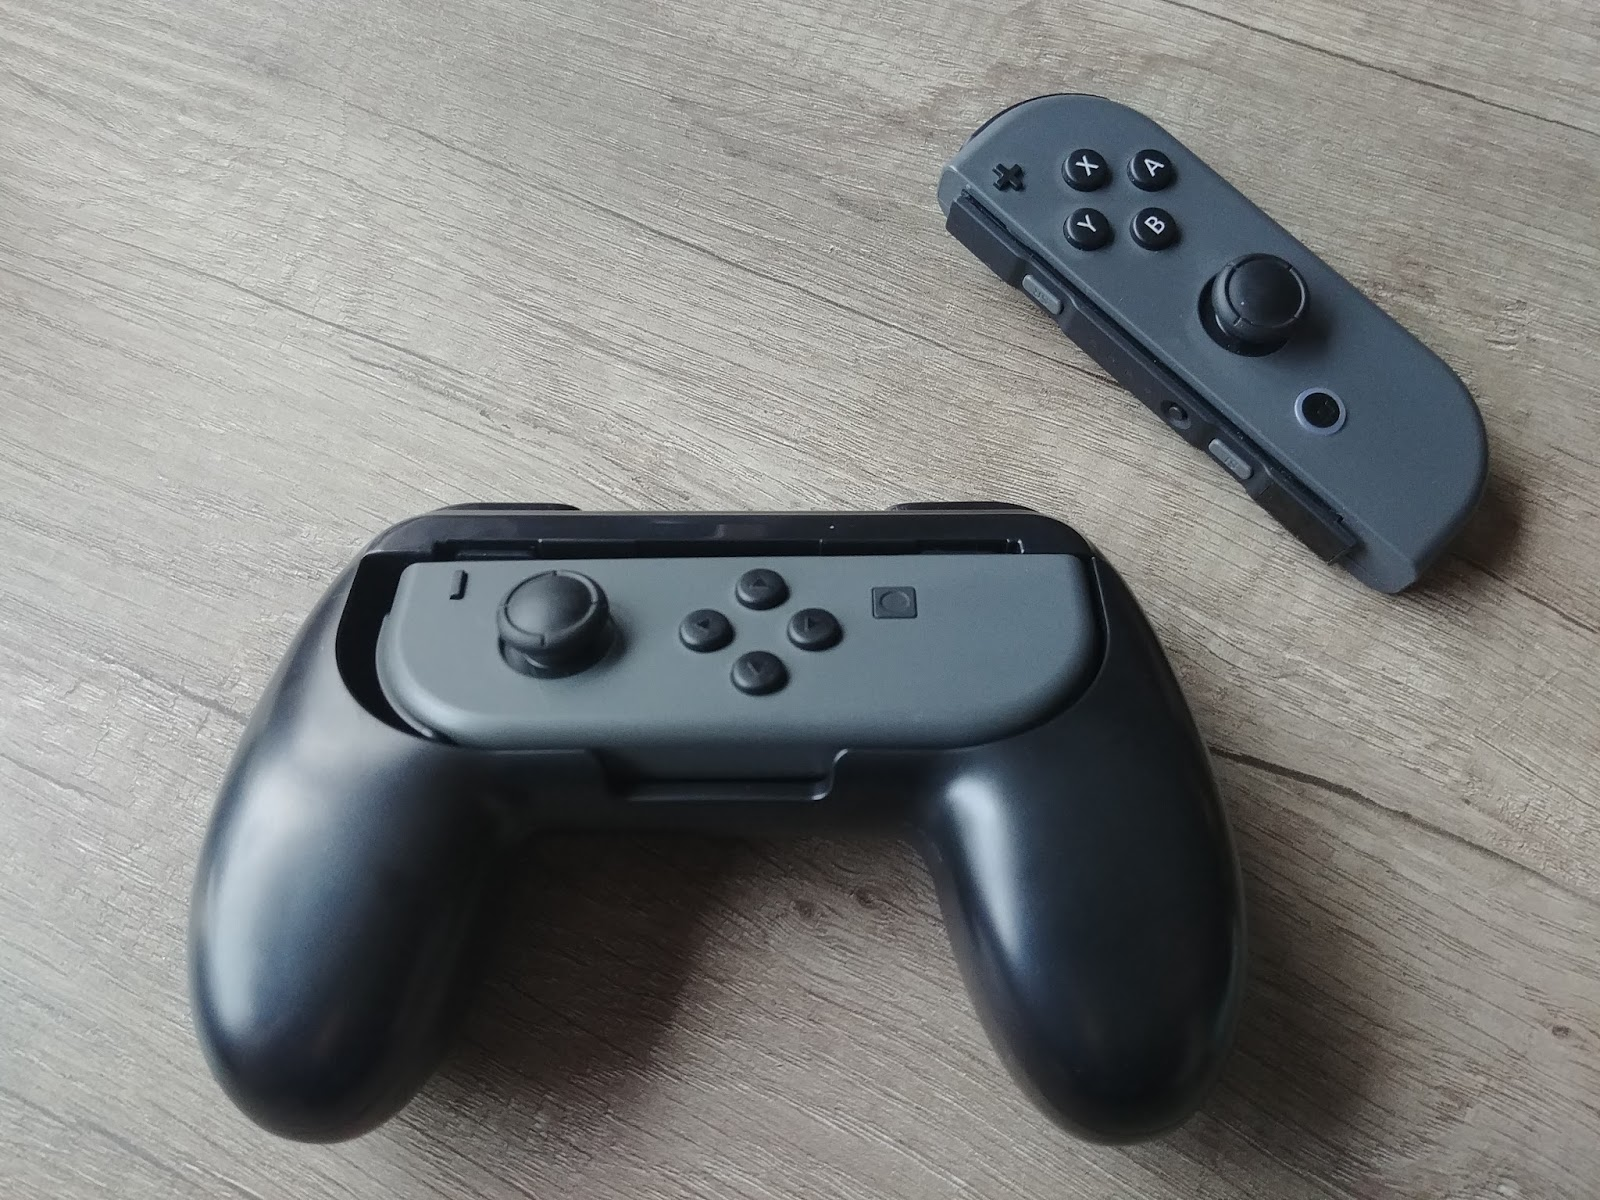 Get a grip: Switch joy-con grip accessory review - GeeksvsGeeks